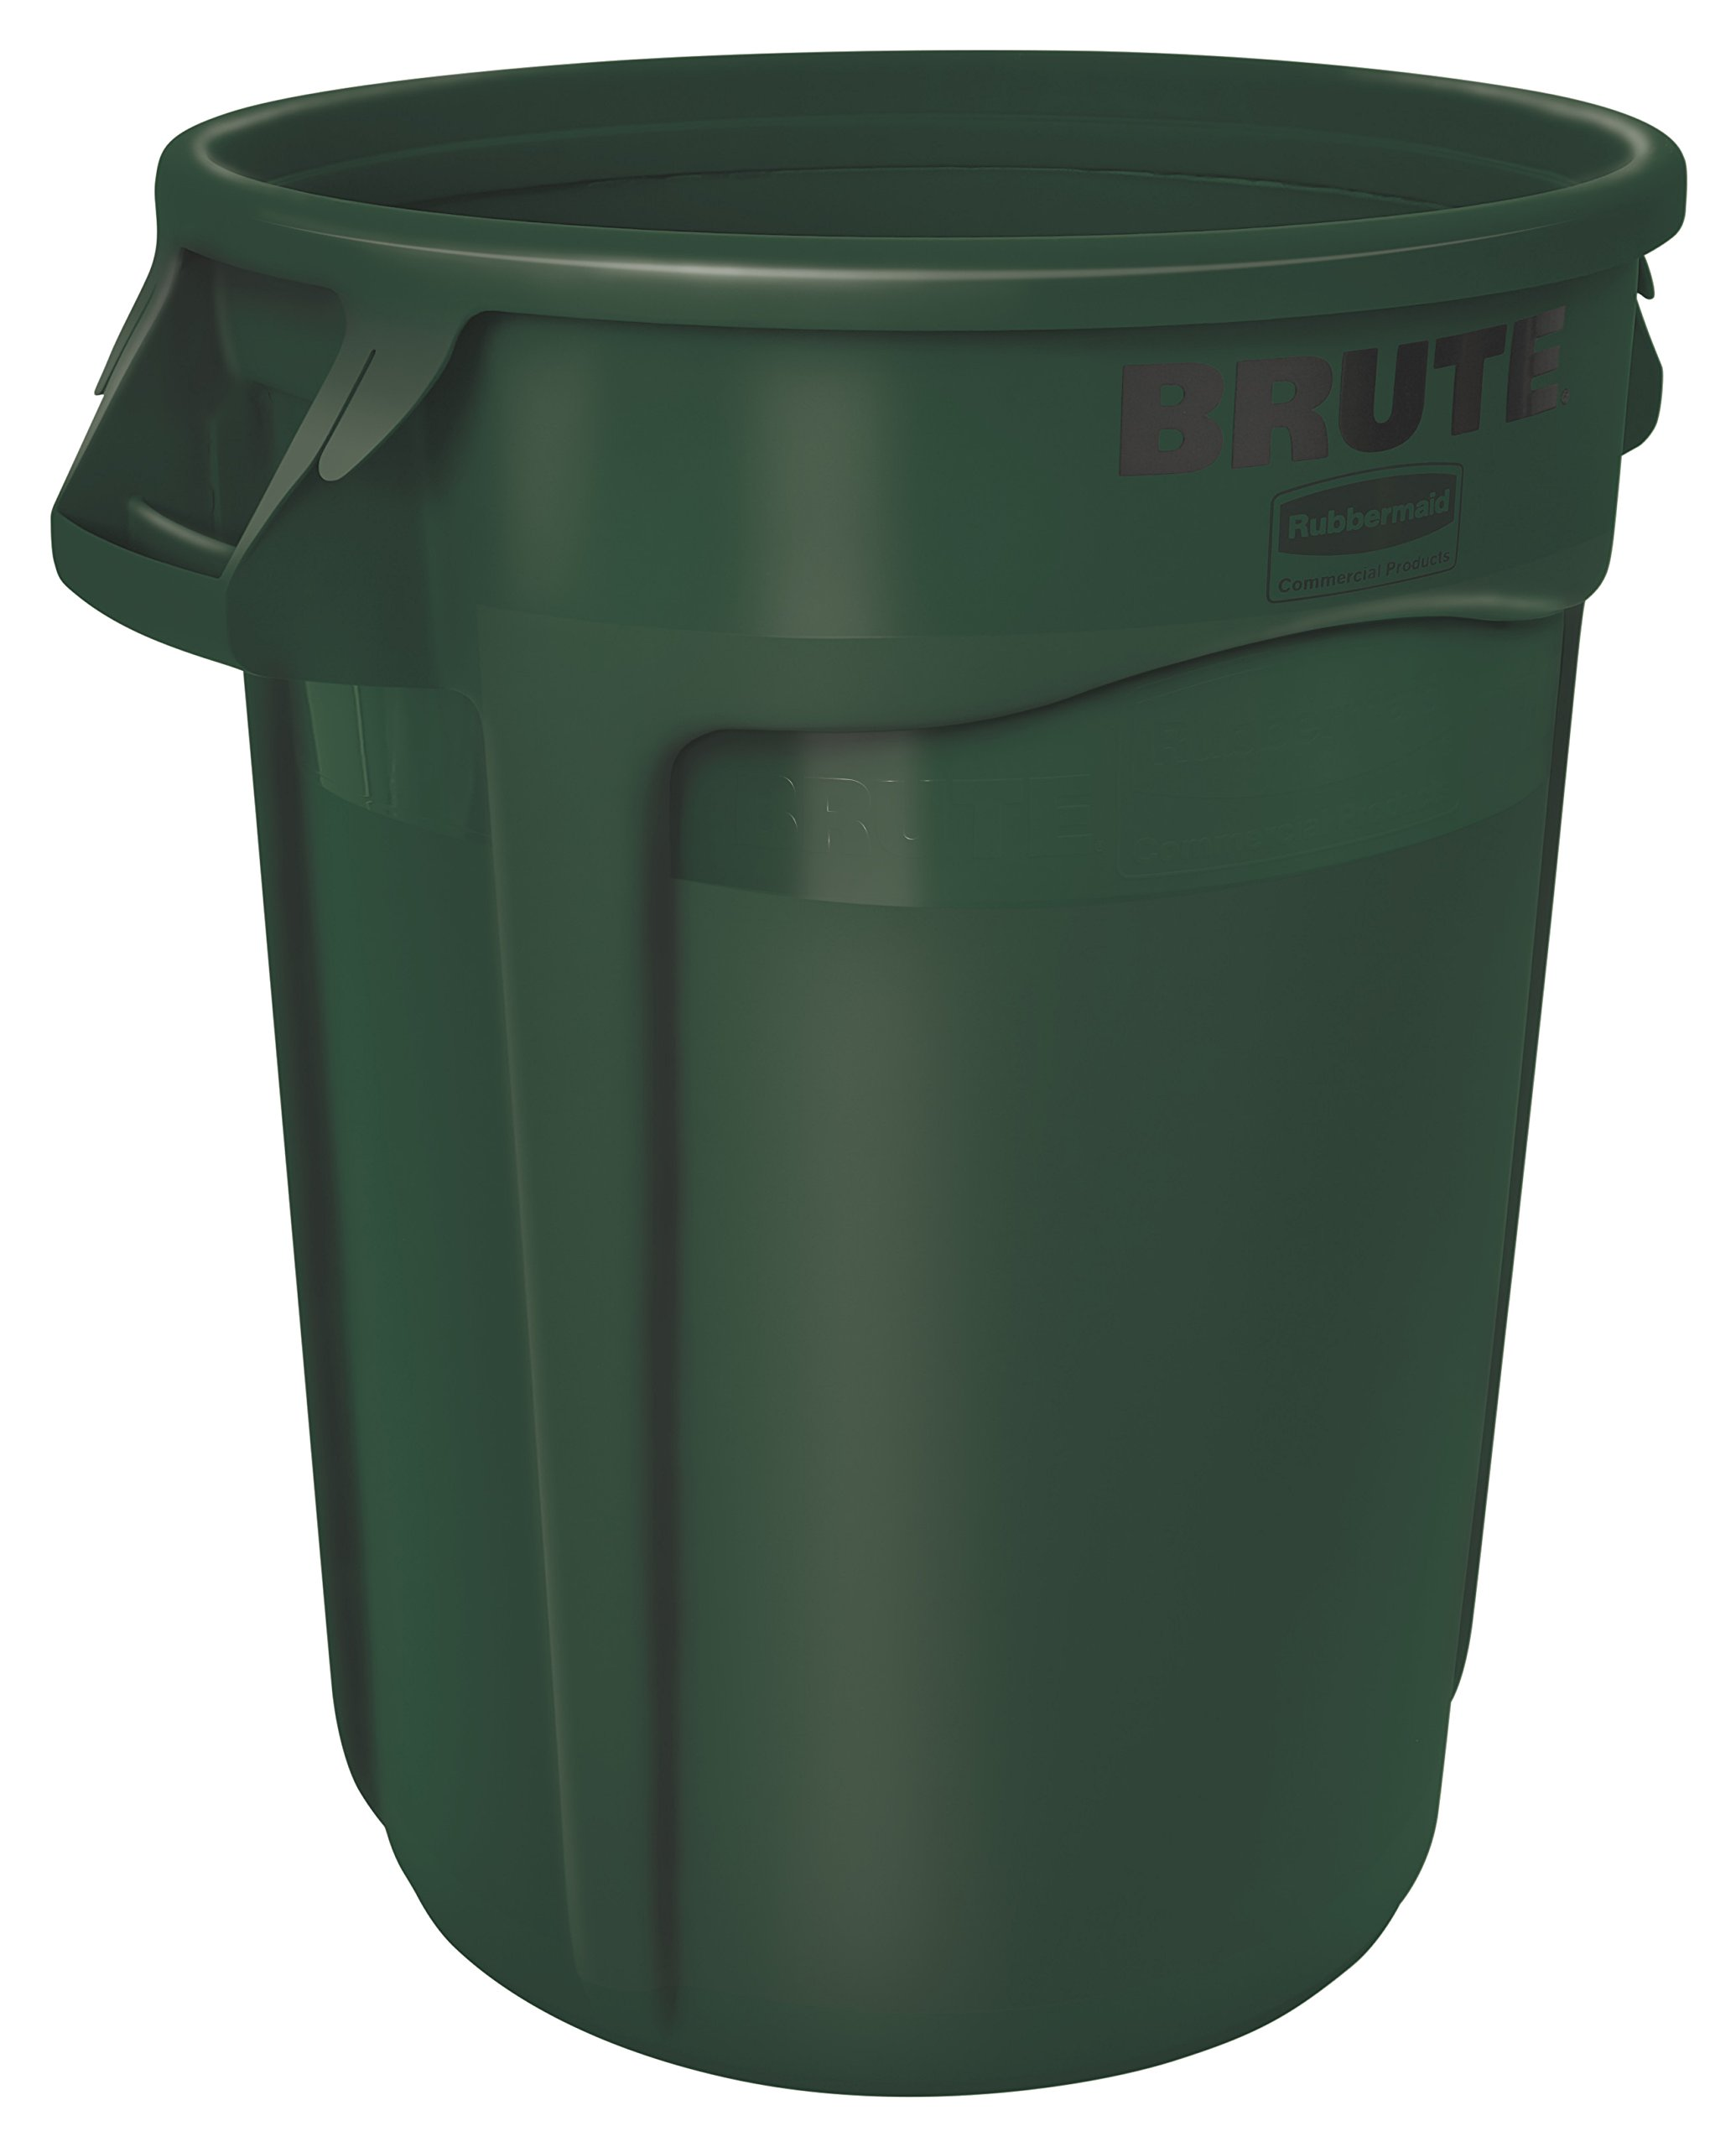 Rubbermaid Commercial BRUTE Heavy-Duty Round Waste/Utility Container with Venting Channels, 32-gallon, Green (FG263200DGRN)